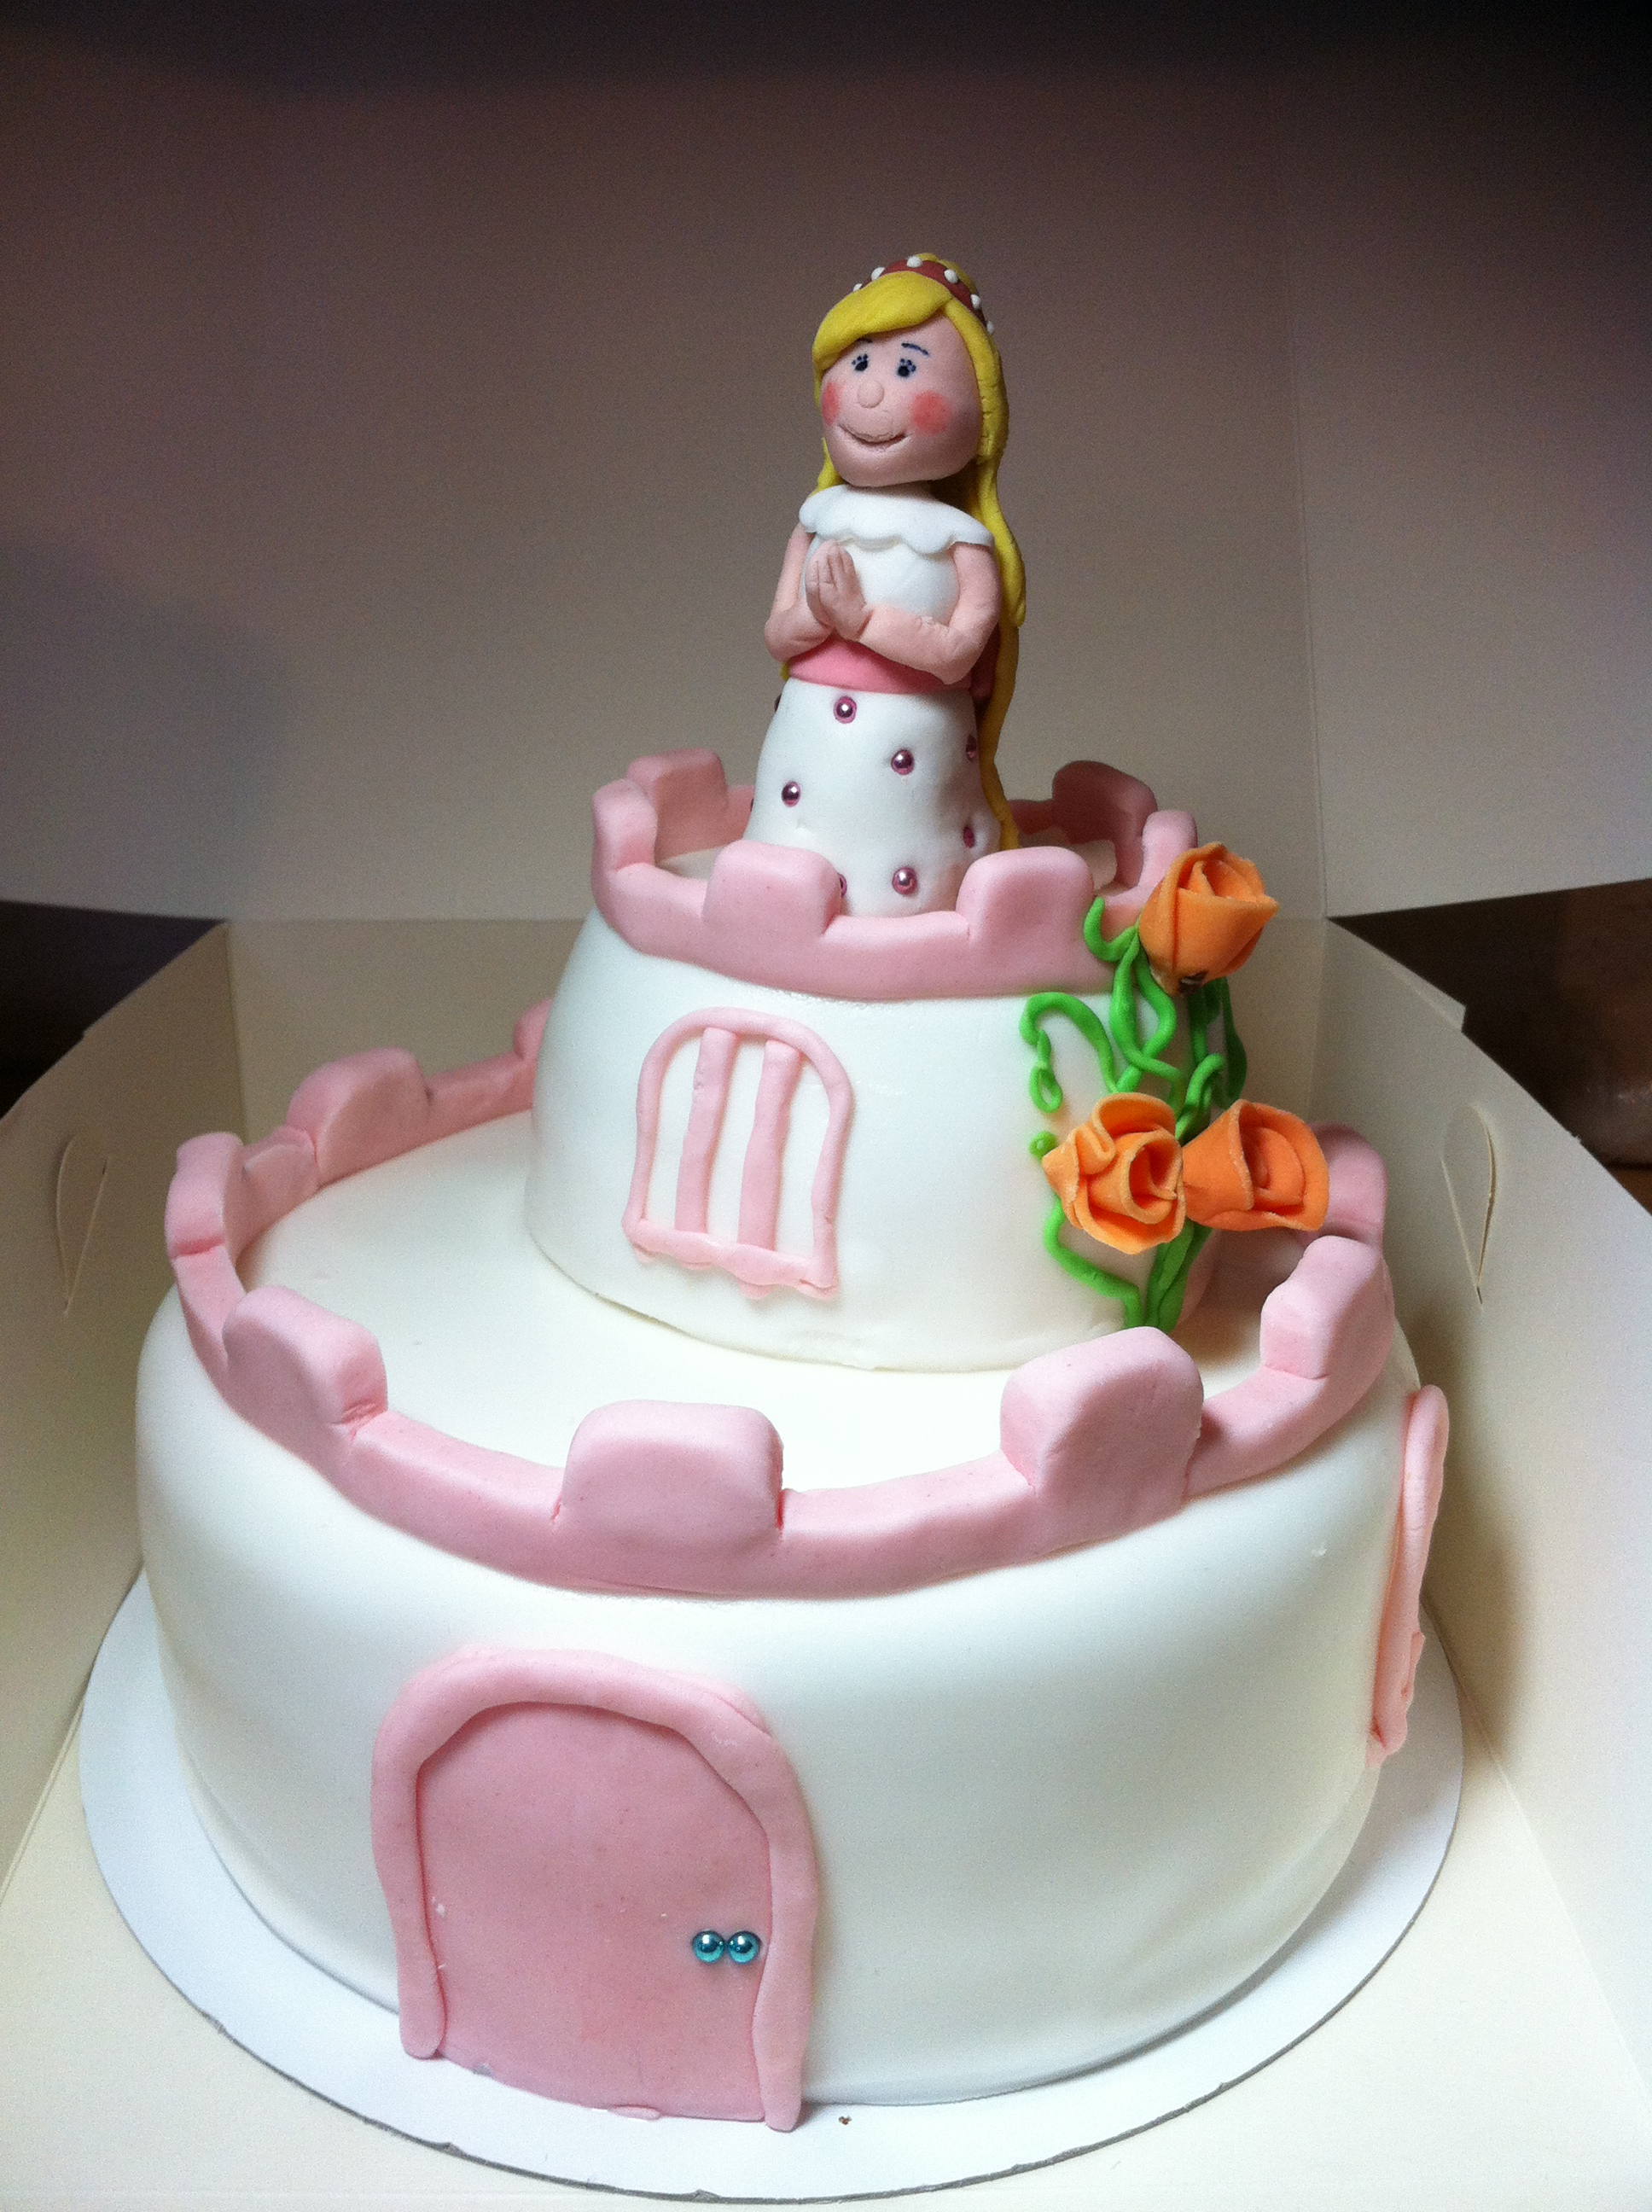 Birthday Cakes Recipe For Girls Boys Form Men Images With